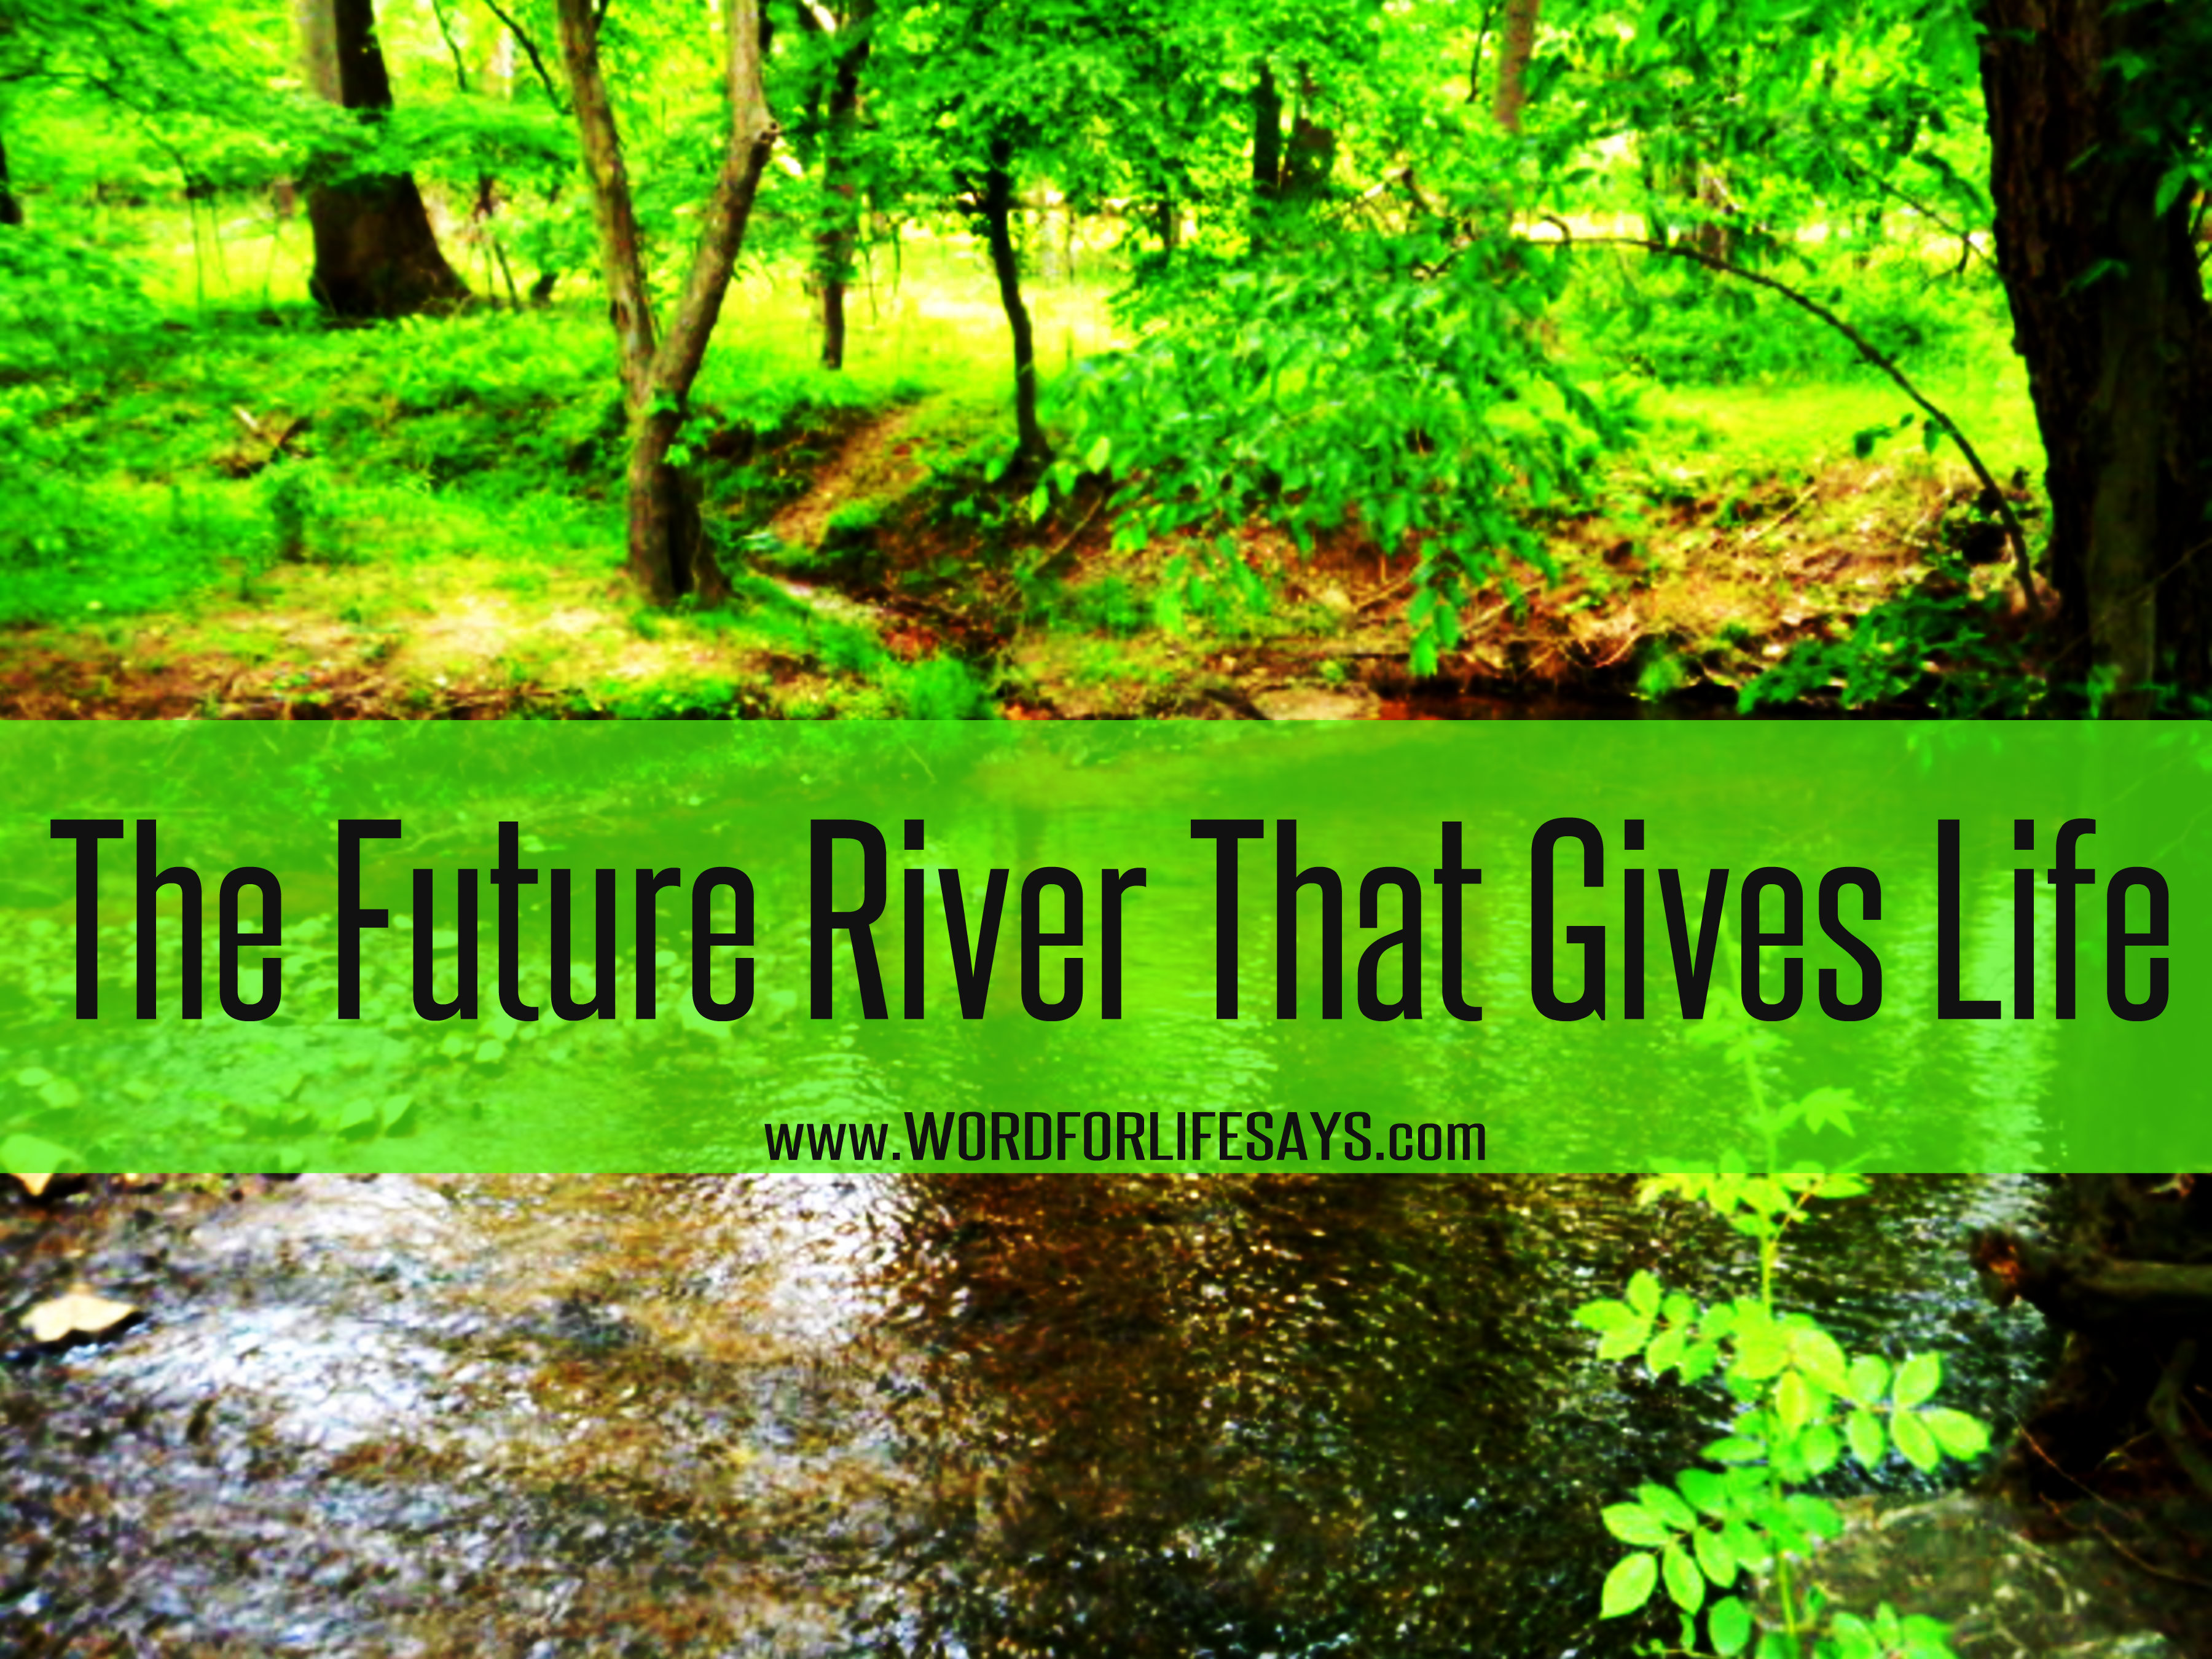 The Future River That Gives Life Sunday School Lesson